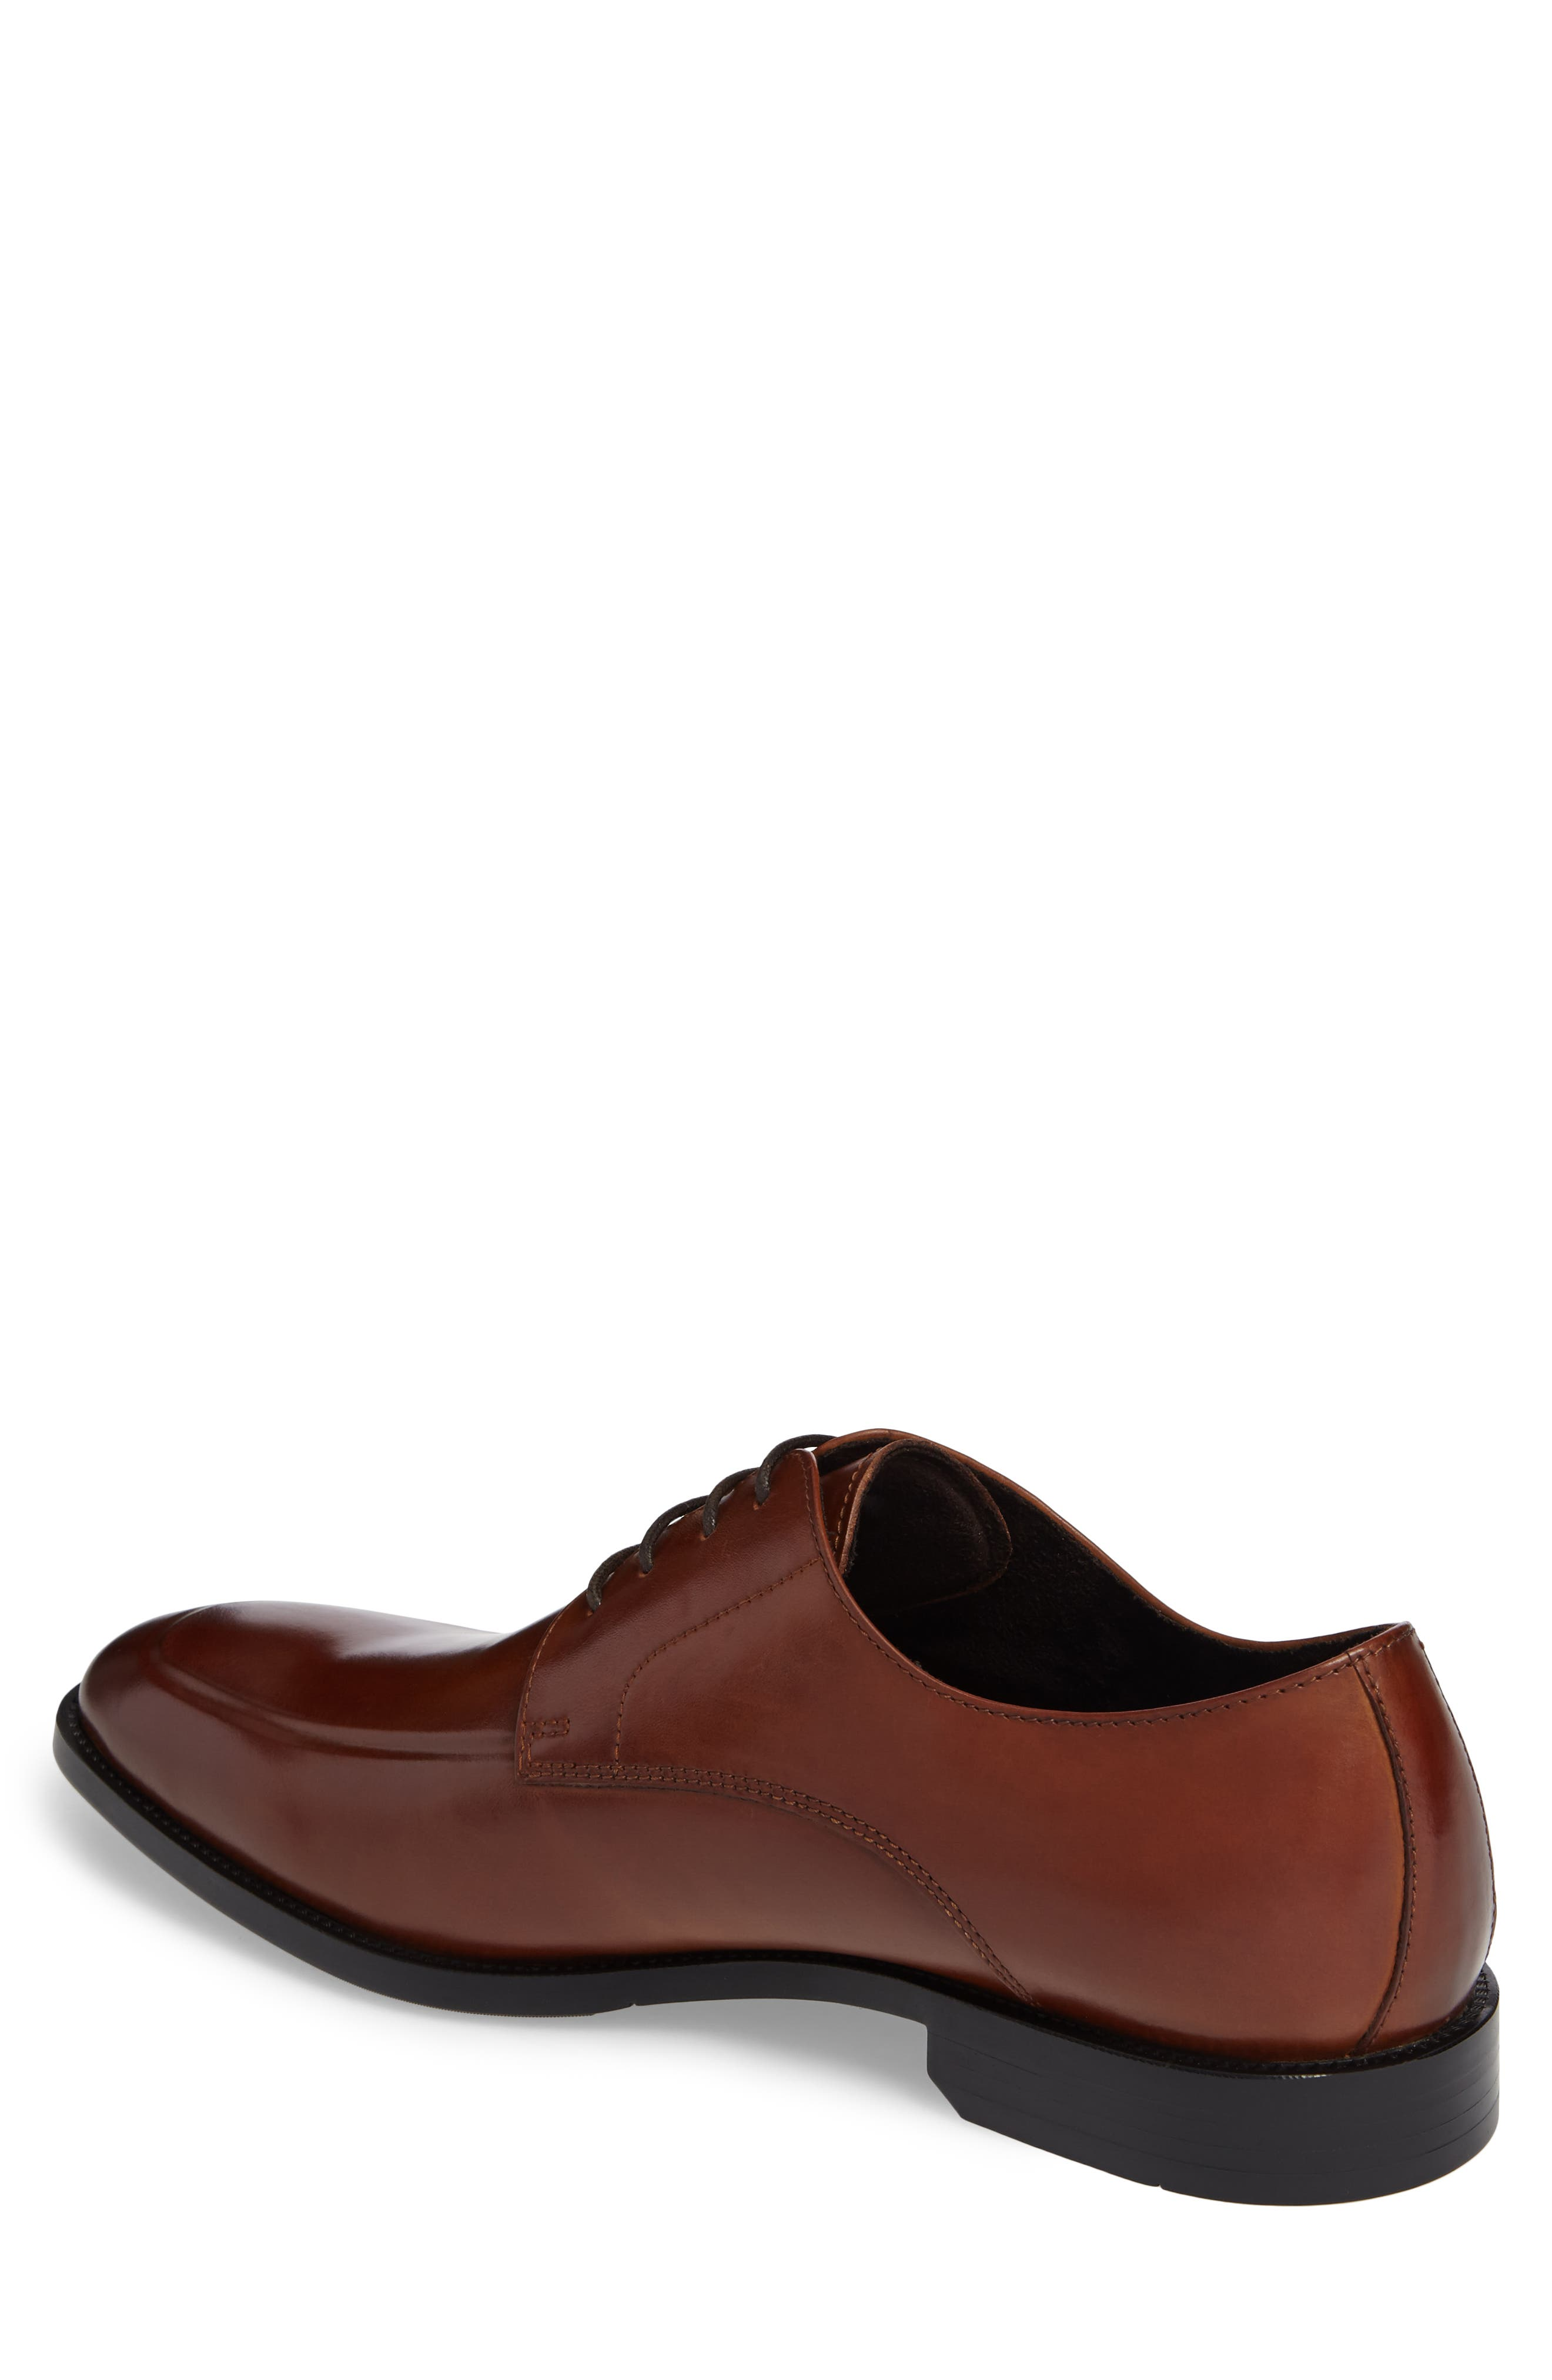 Apron Toe Derby,                             Alternate thumbnail 2, color,                             Brandy Leather